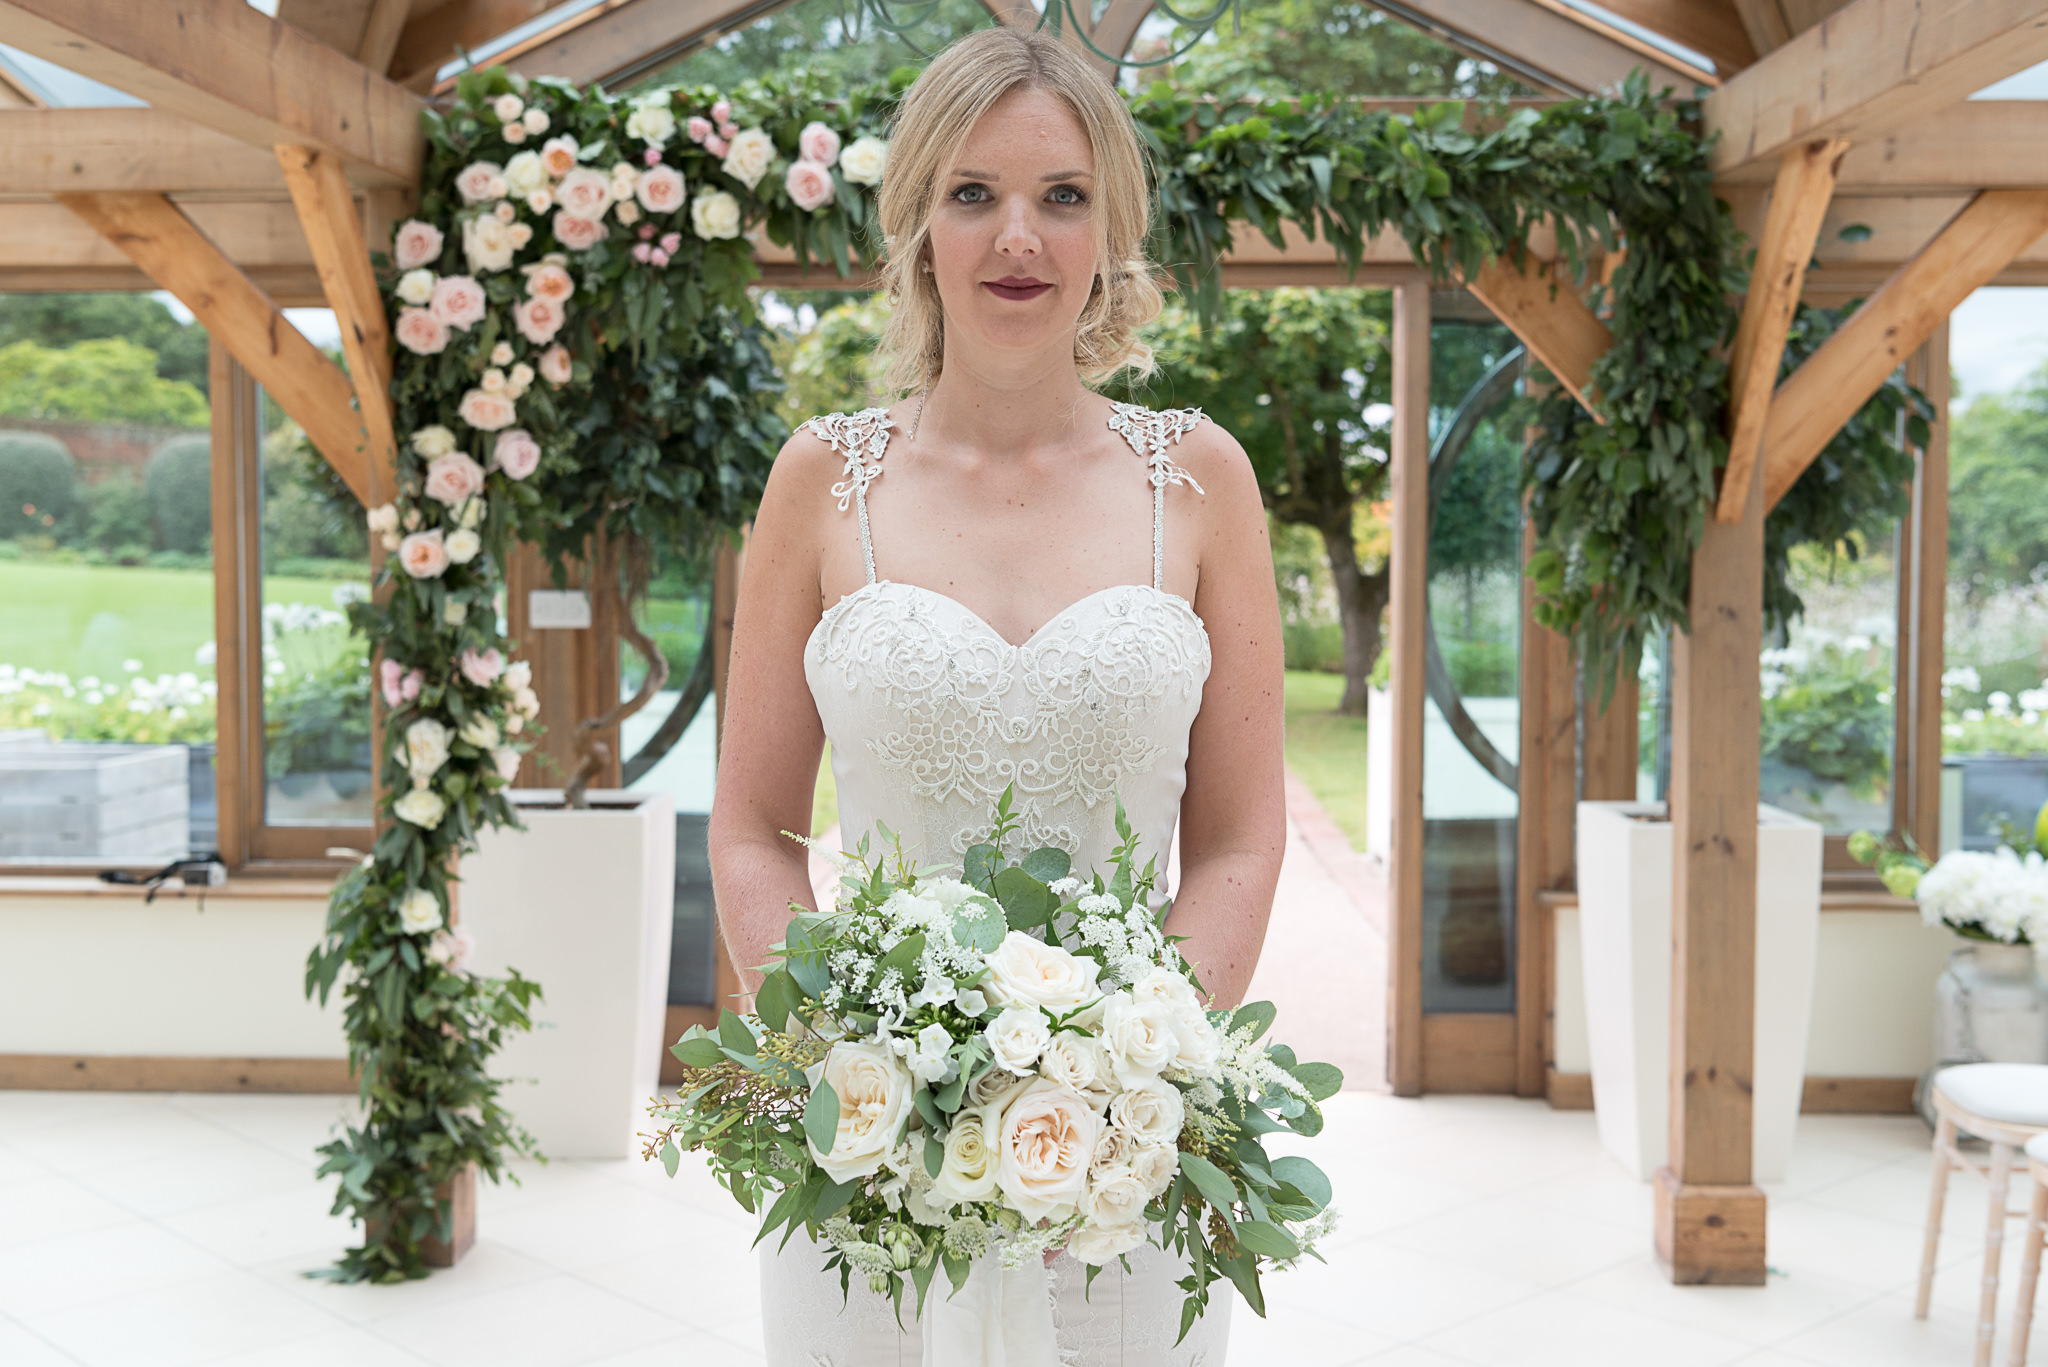 Modern English Rose Bride,  Flowers by Petal and Wild, bride in front of floral arch 1 image by Victoria Murray Photography_mini.jpg